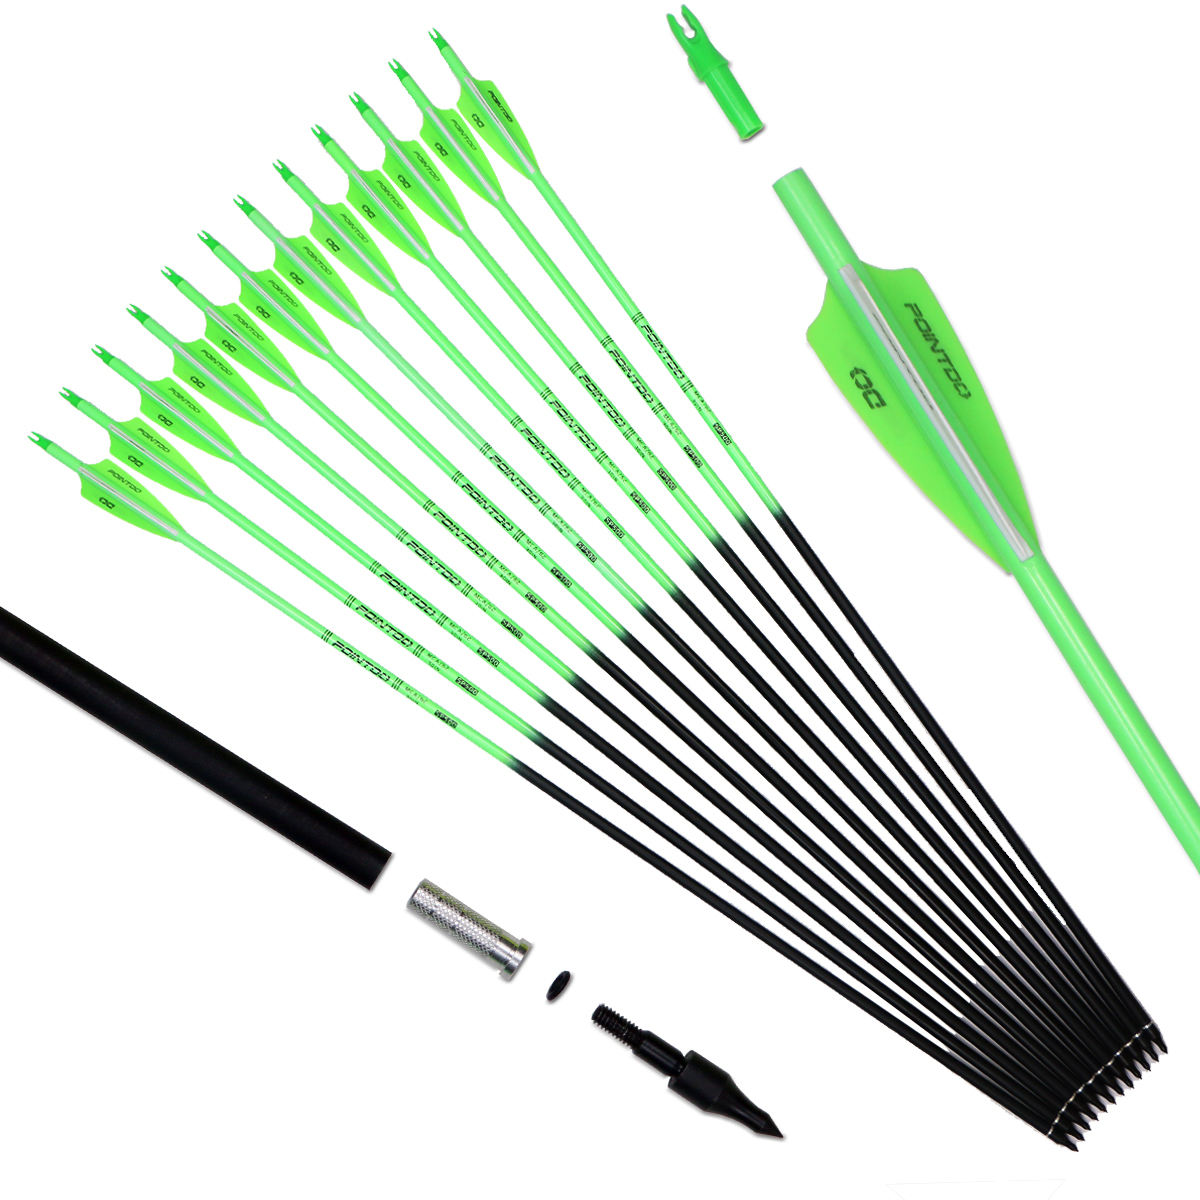 Pointdo 30inch Carbon Arrow Fluorescent Color Target Practice and Hunting Arrow for Compound and Recurve Bow with Removable Tip